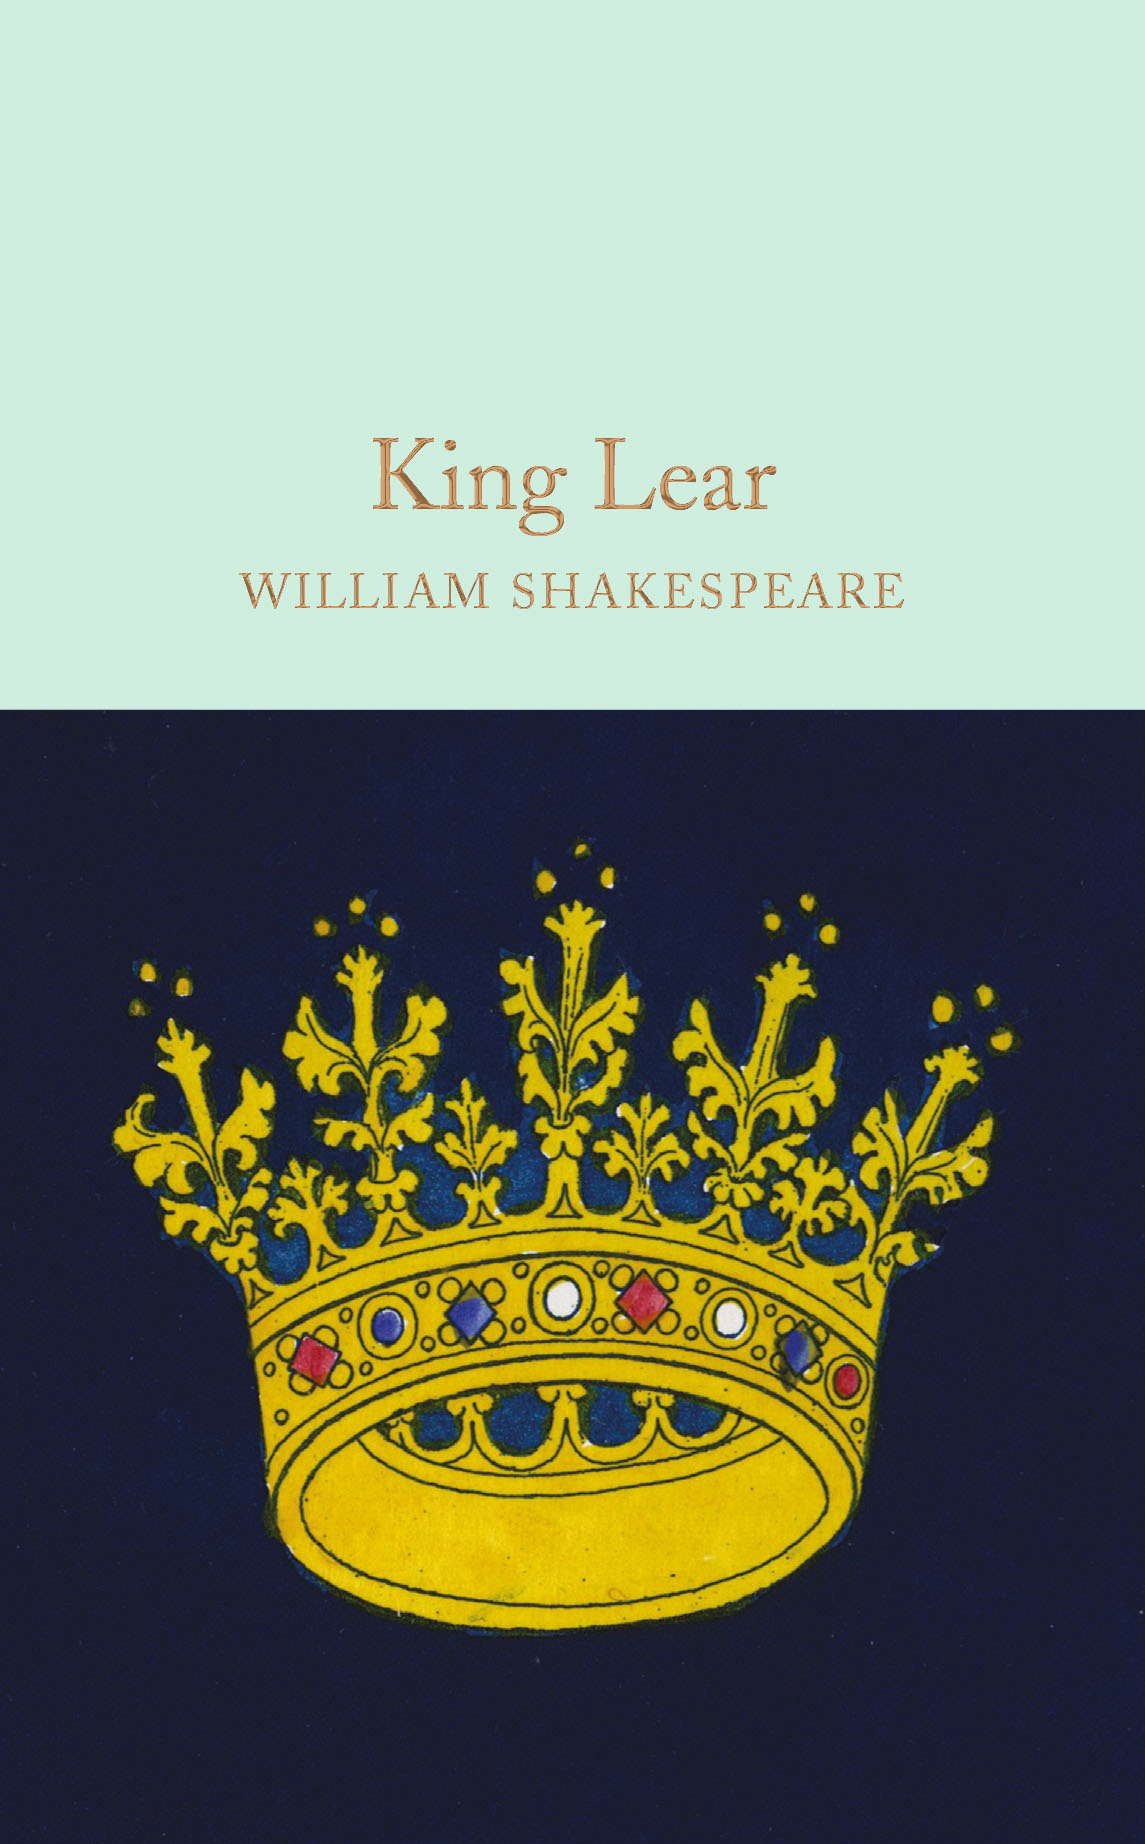 King Lear riggs r library of souls